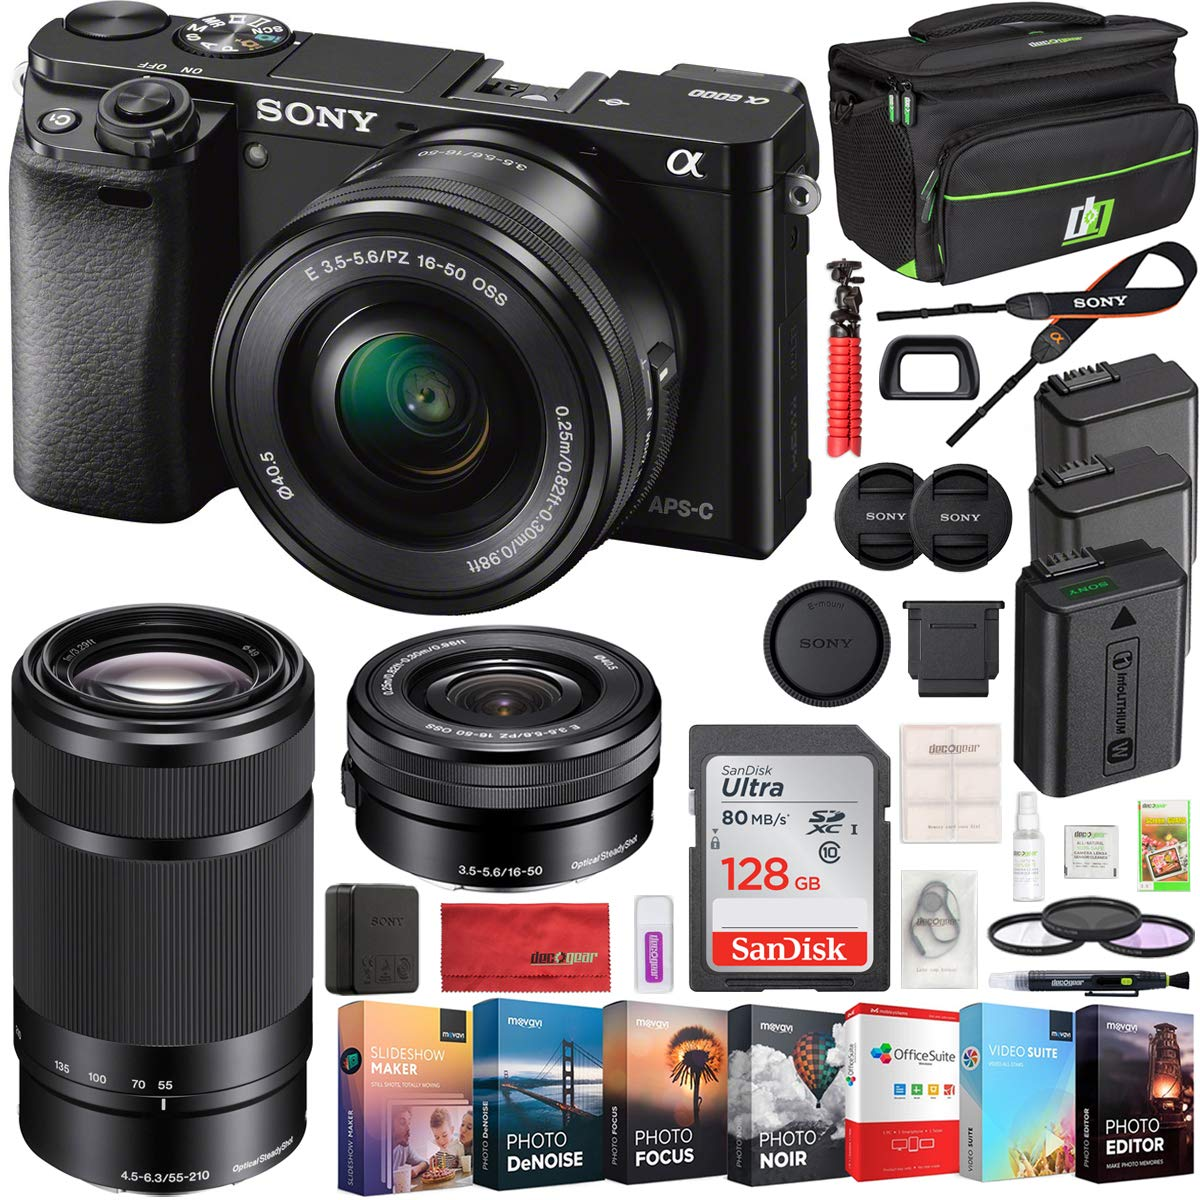 Sony Alpha a6000 Mirrorless Digital Camera 2 Lens 16-50mm & 55-210mm Lens (Black) ILCE-6000Y/B with 2X Extra Battery 128GB Memory Deco Gear Case Filter Kit Editing Suite Performance Bundle by Sony (Image #1)